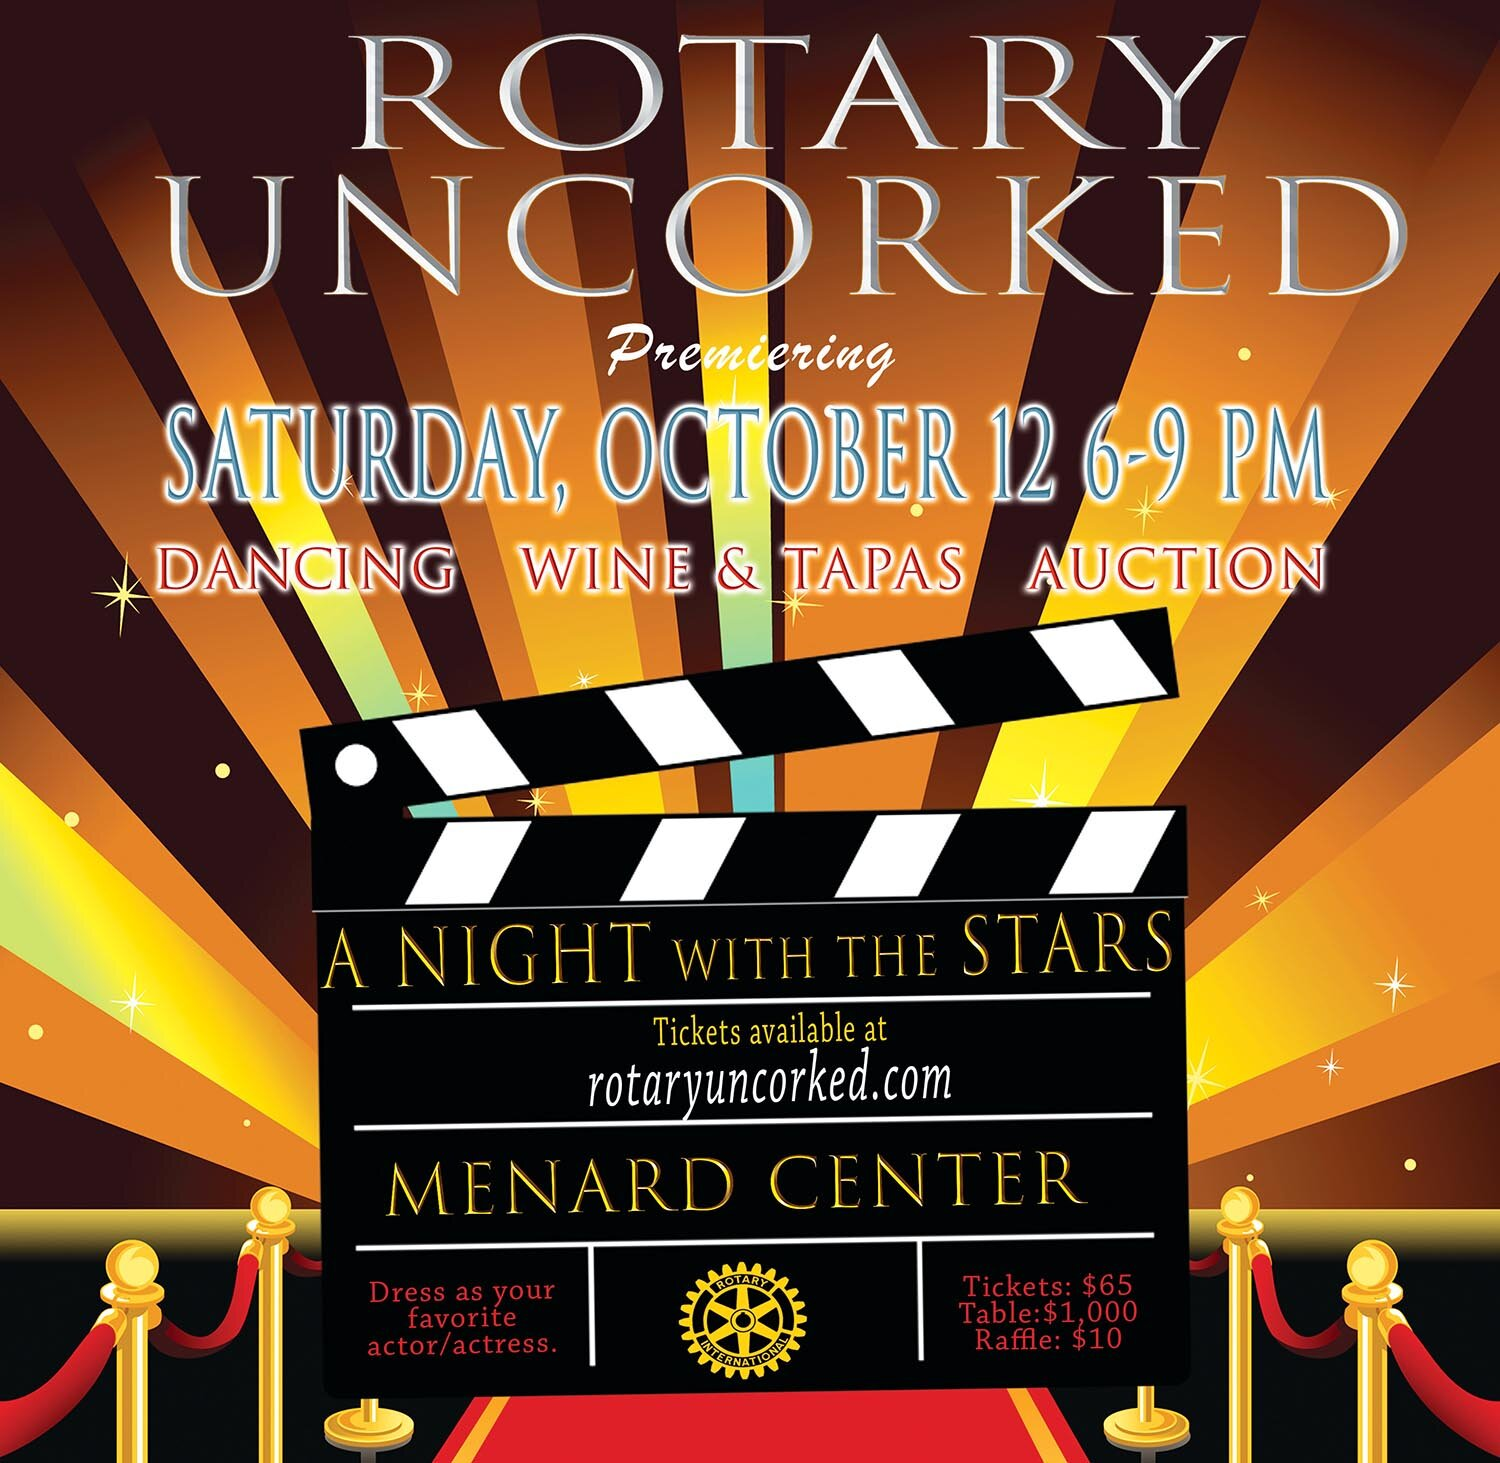 Rotary Uncorked Sept 2019 WEB.jpg